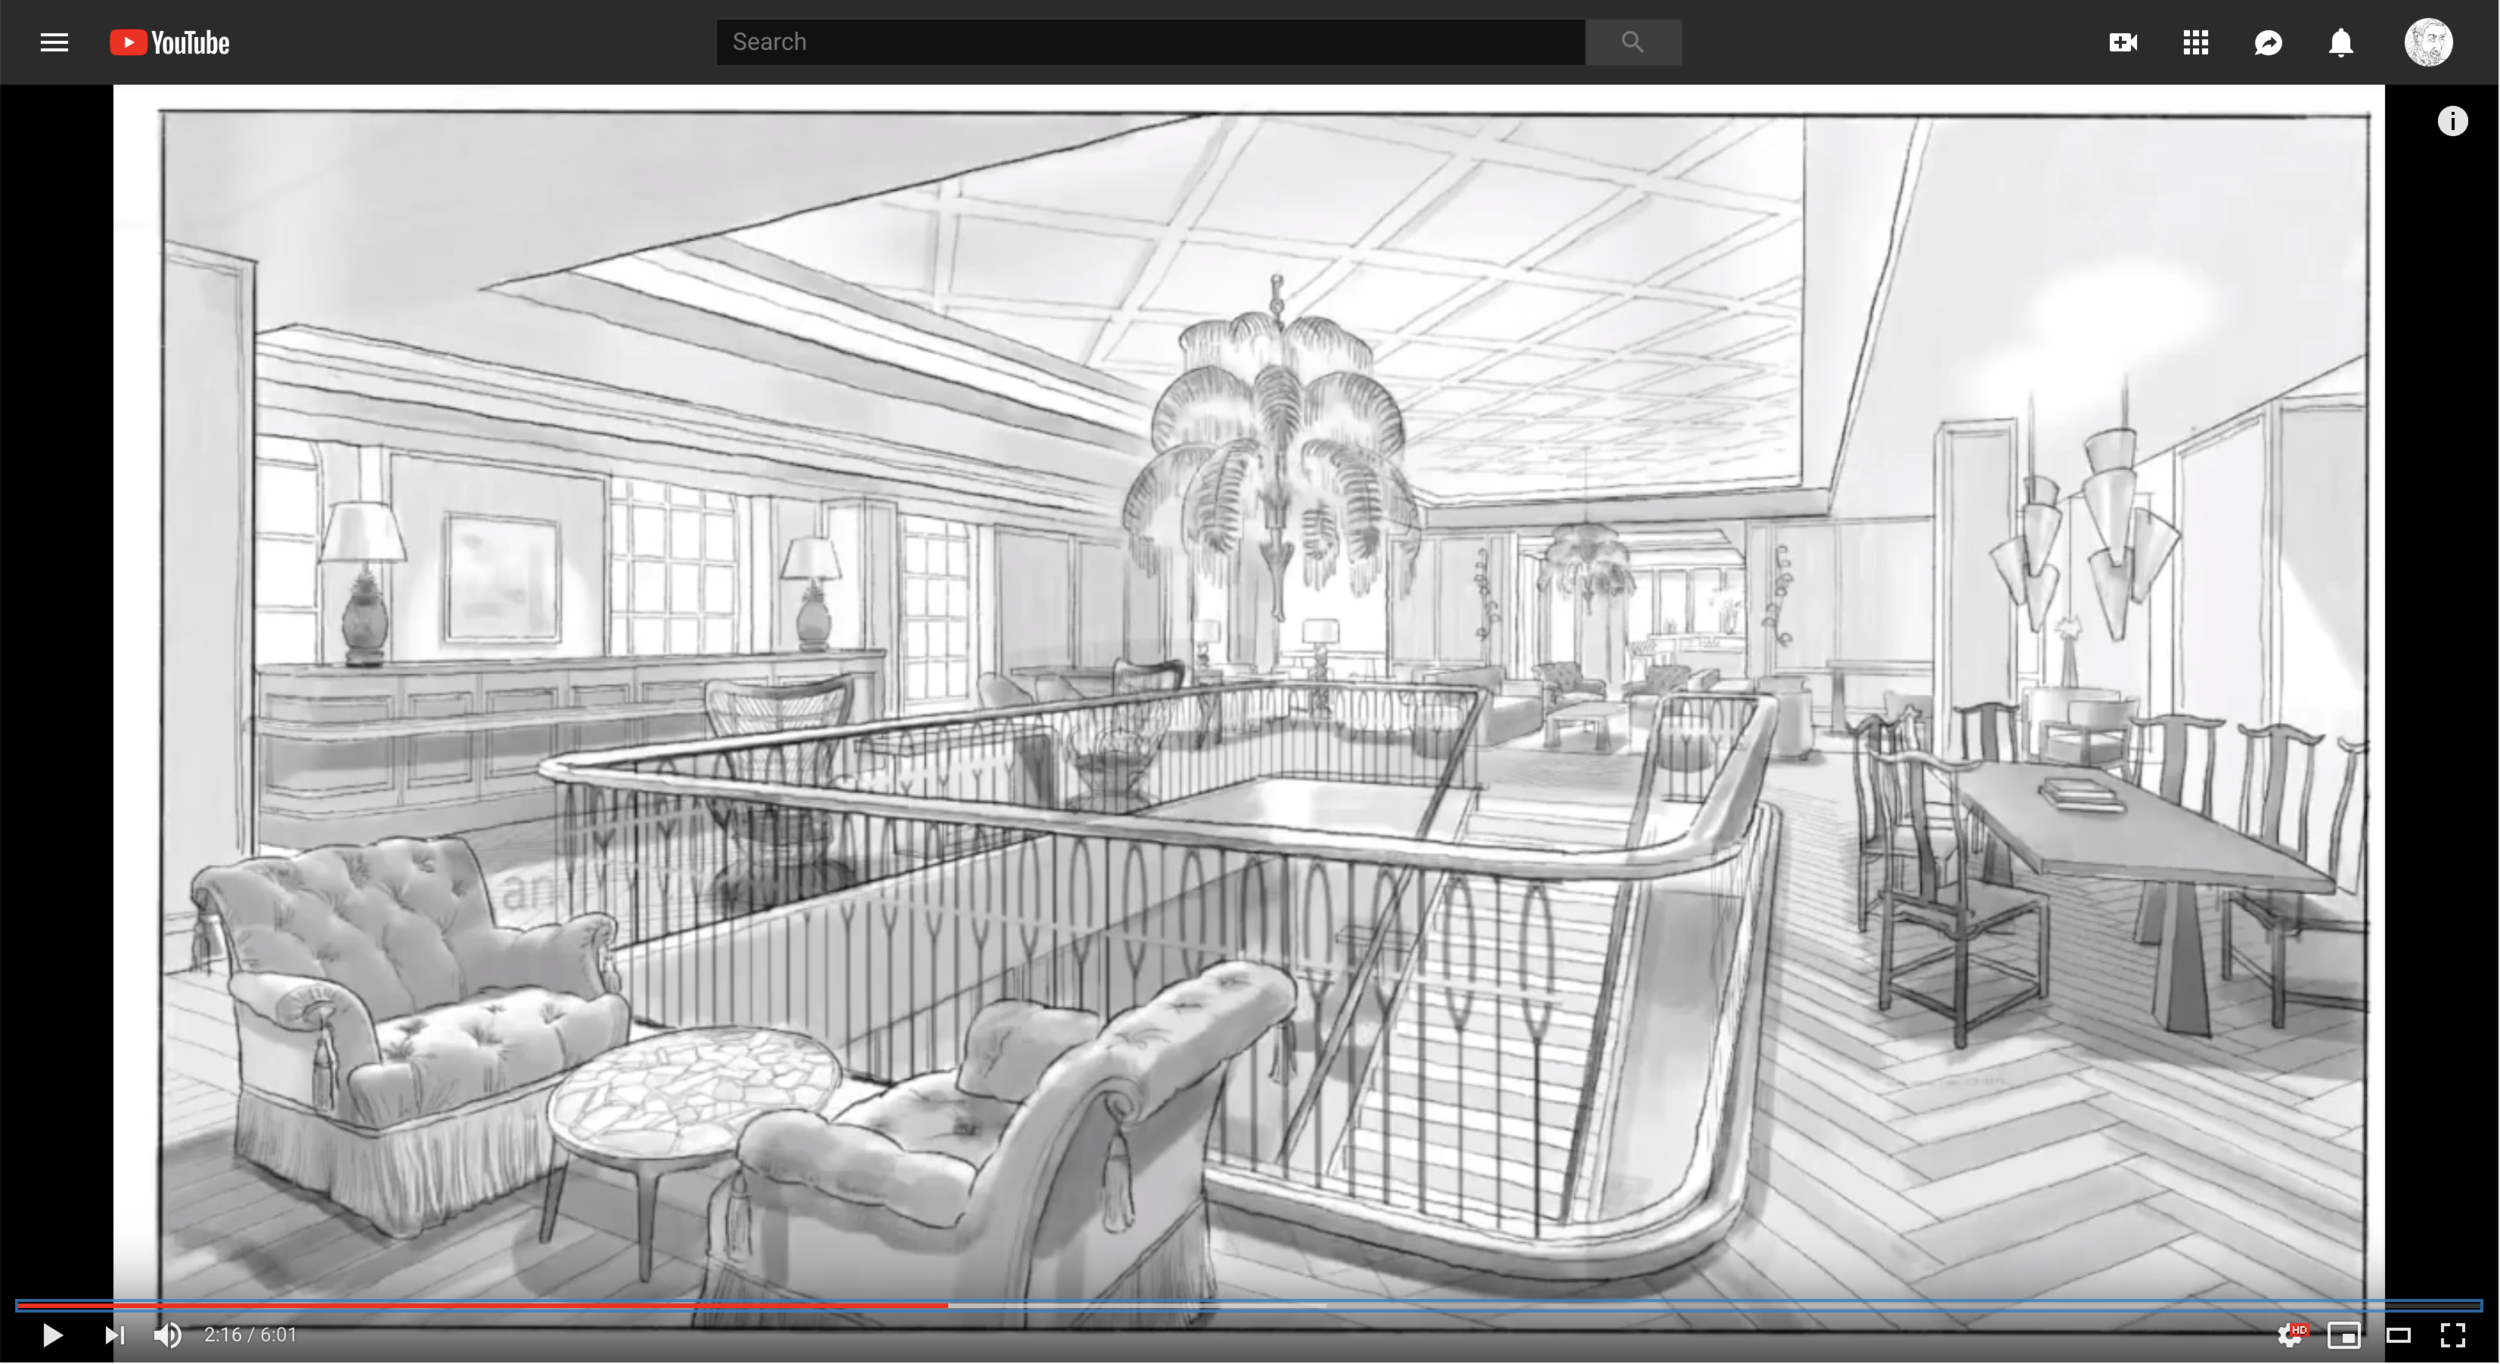 Using Sketchup And Procreate To Simultaneously Design And Render 5